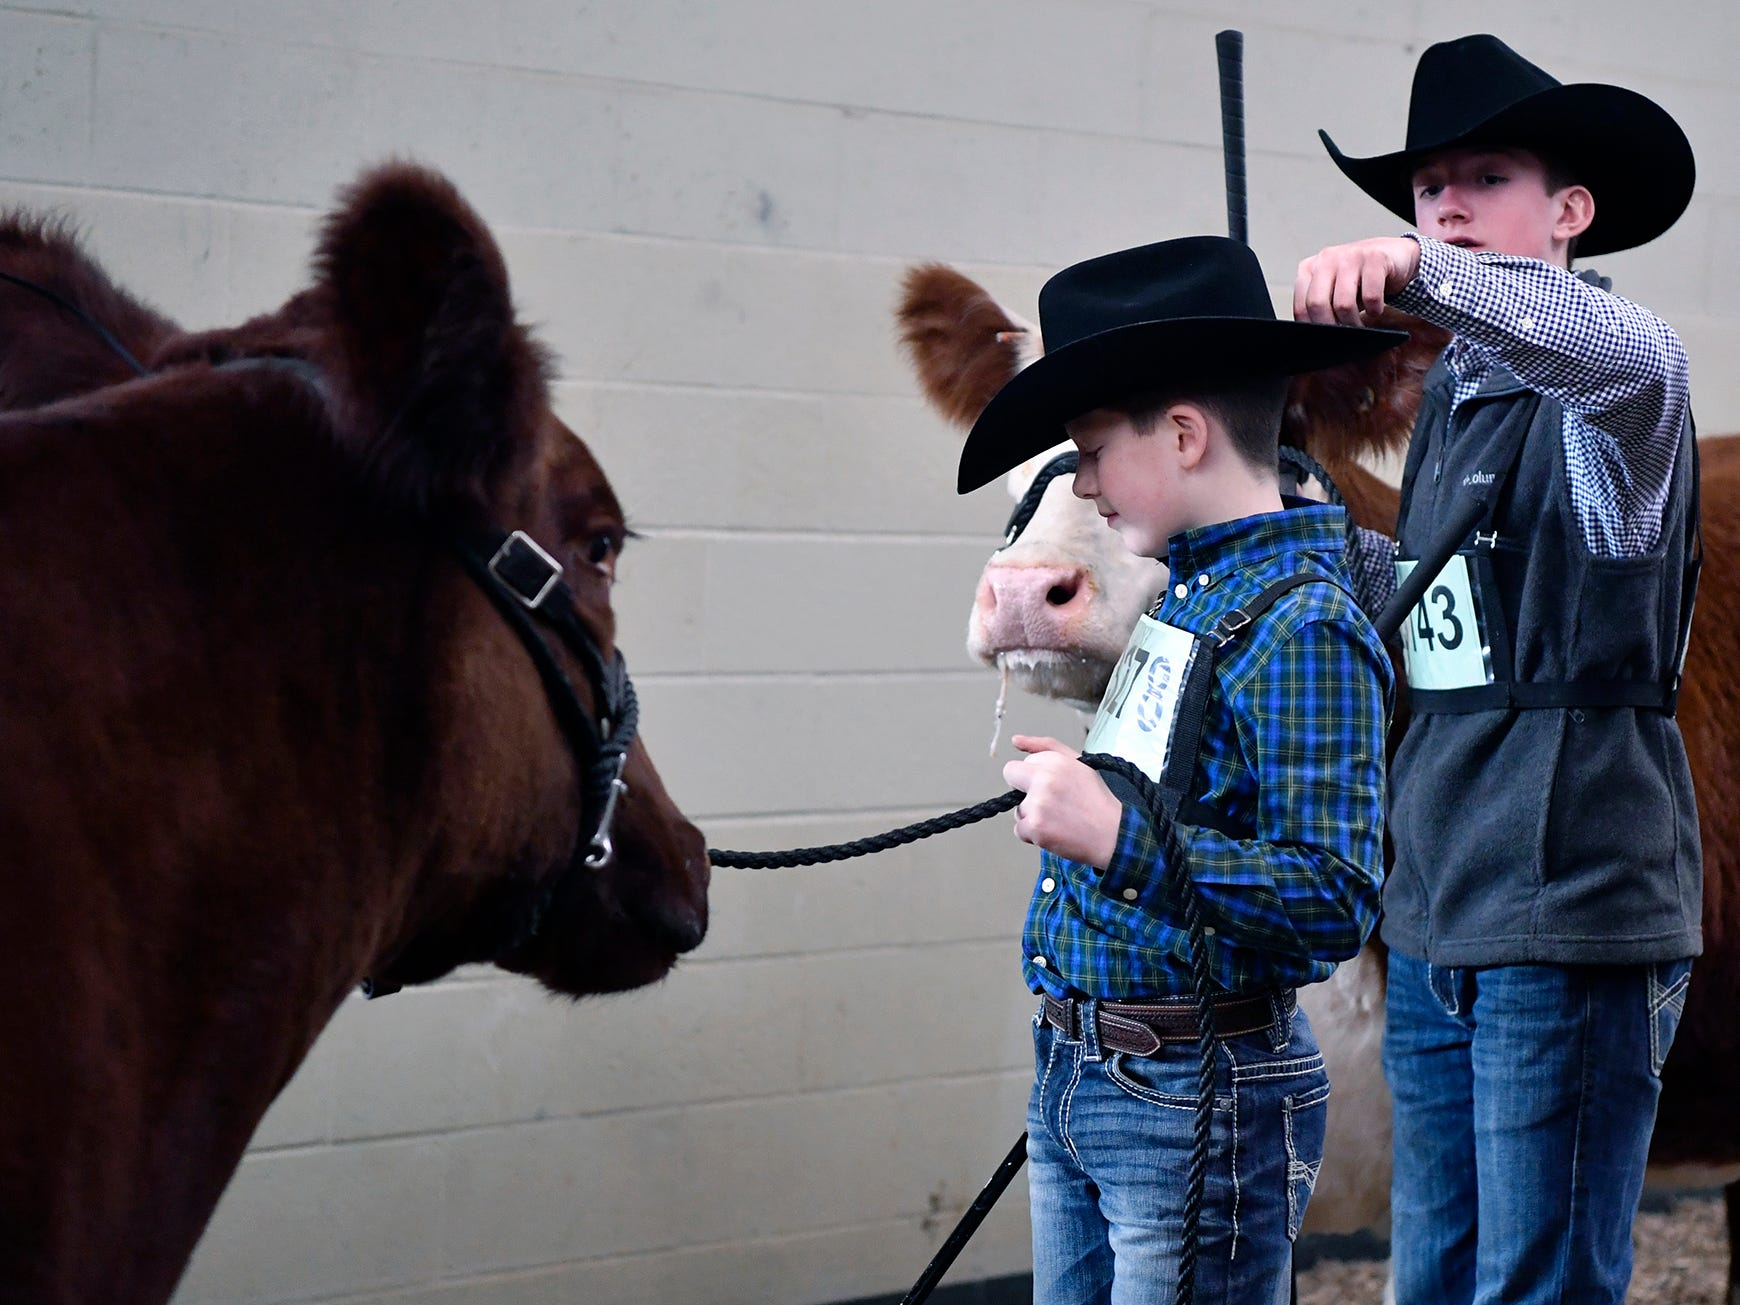 Jay Allen, 13 at right, cleans dirt of the back of his 11-year-old brother Ben's hat before they enter the judging ring with their cows during the 103rd Pennsylvania Farm Show, Sunday, January 6, 2019.  The Allen brothers are from Saxonburg PA.John A. Pavoncello photo